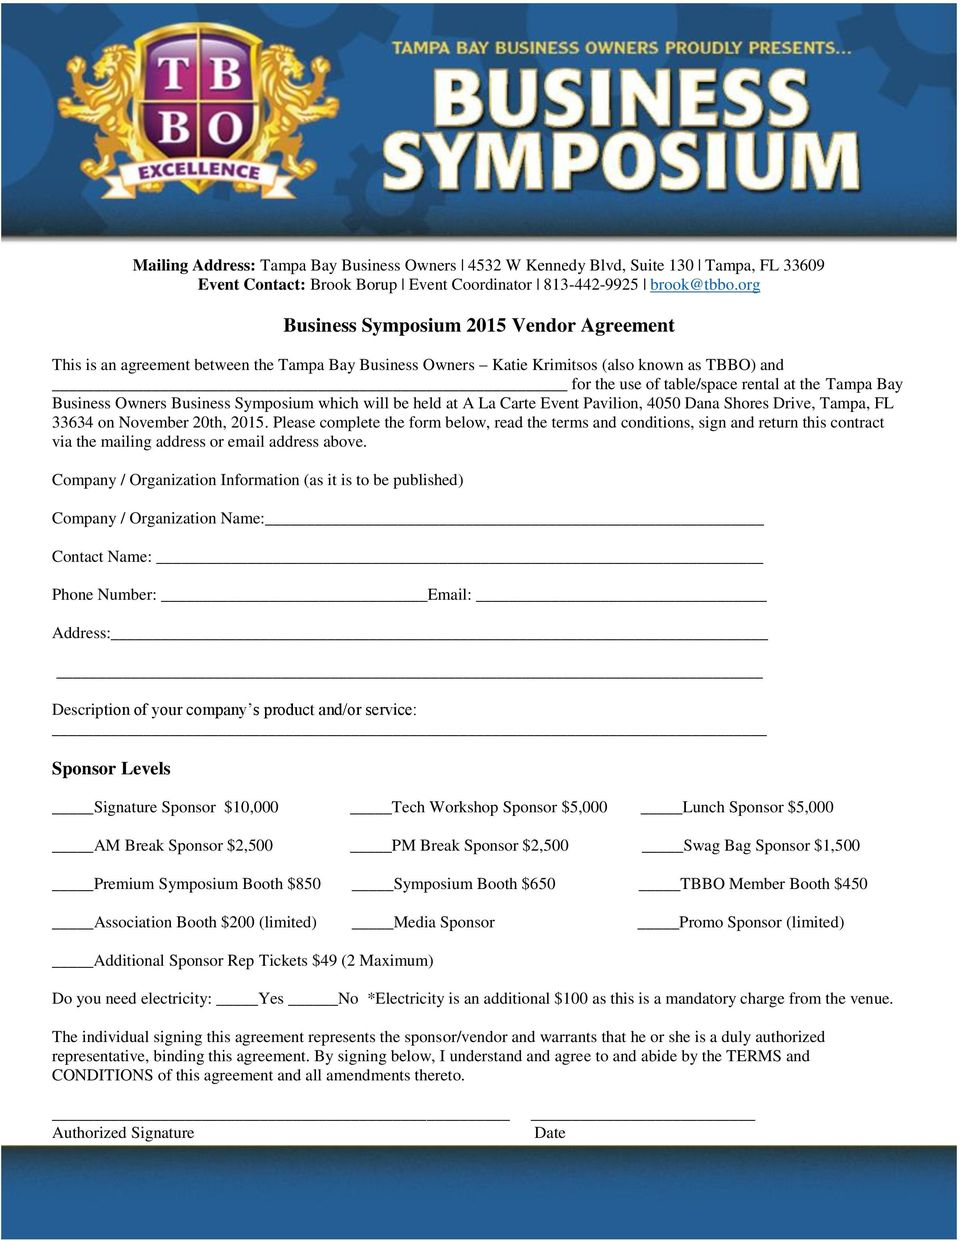 Business Owners Business Symposium which will be held at A La Carte Event Pavilion, 4050 Dana Shores Drive, Tampa, FL 33634 on November 20th, 2015.